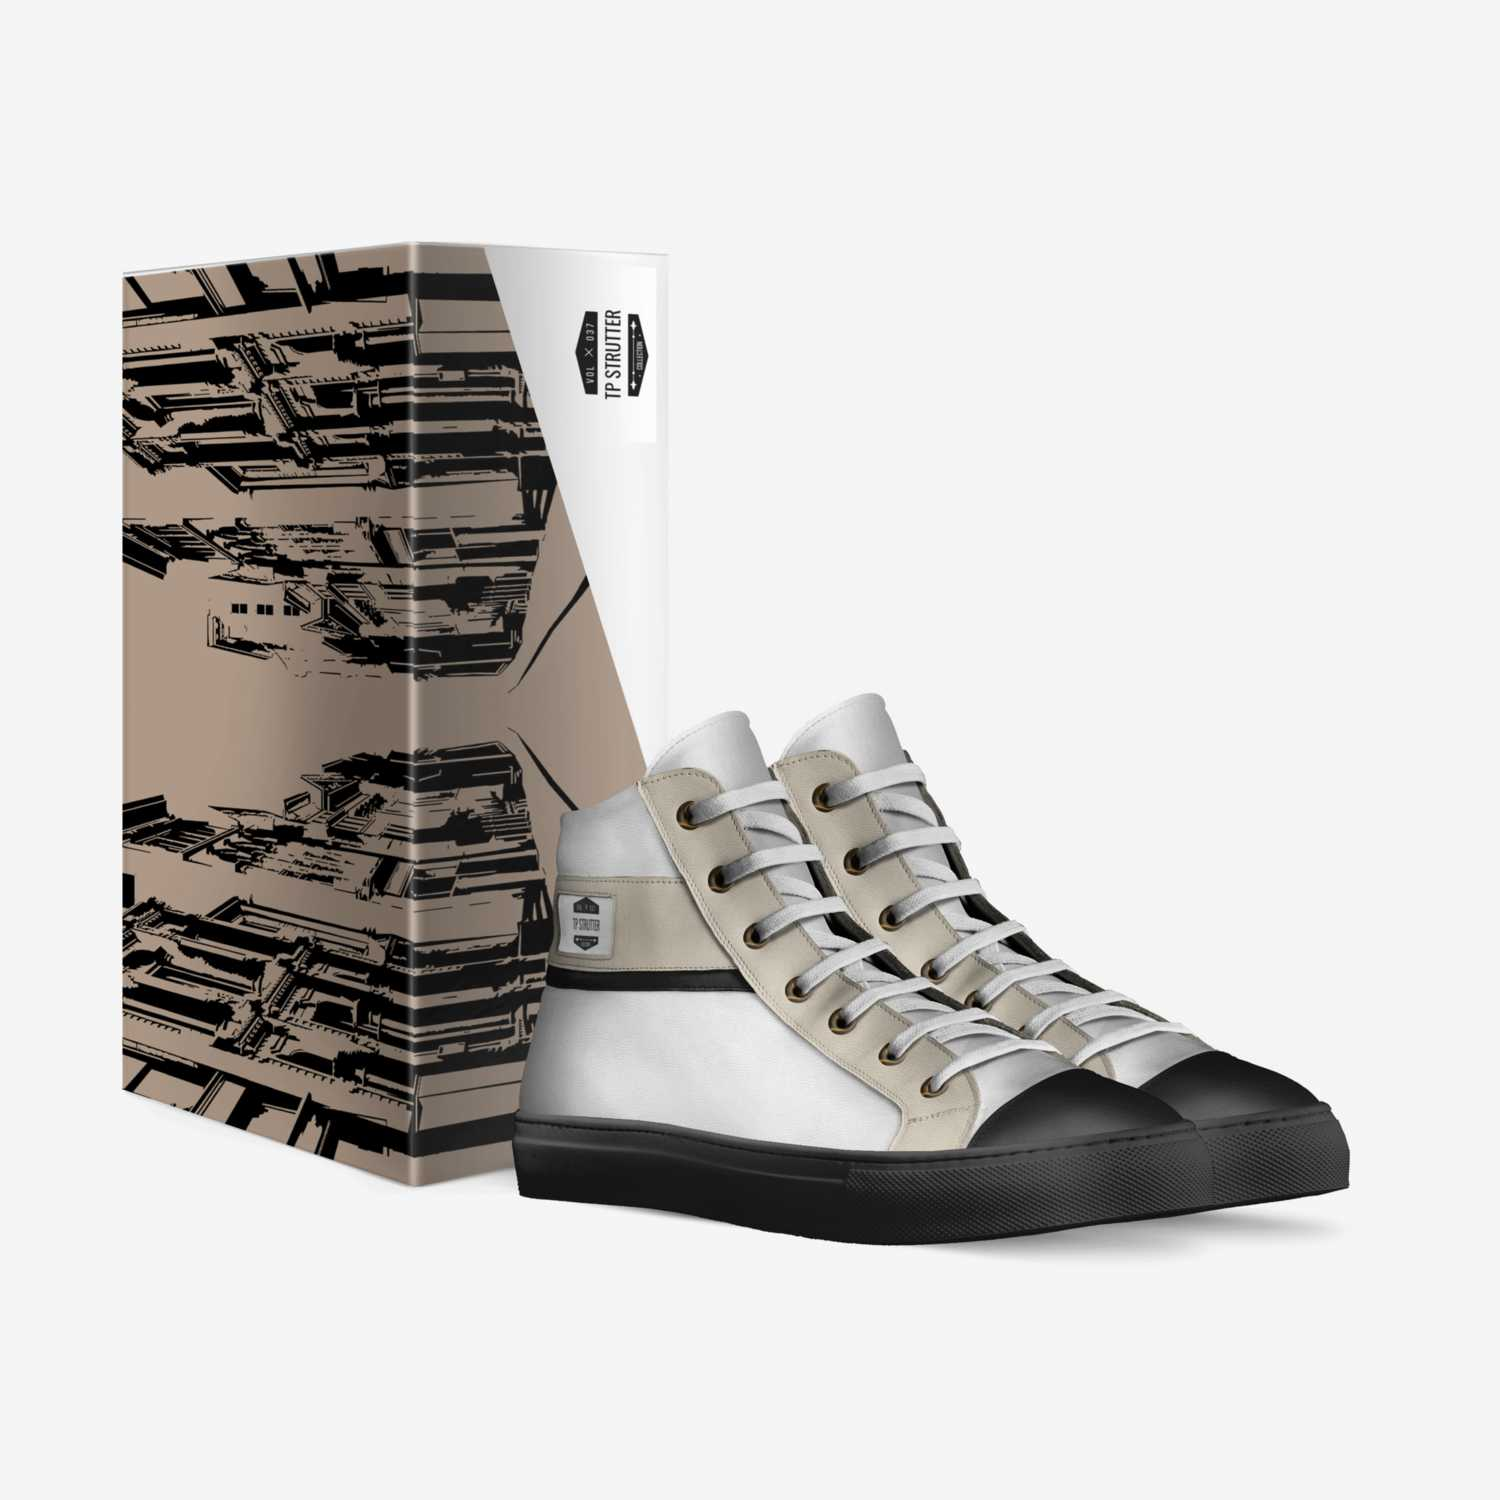 Strutter Max 1 custom made in Italy shoes by Tierre Partee | Box view